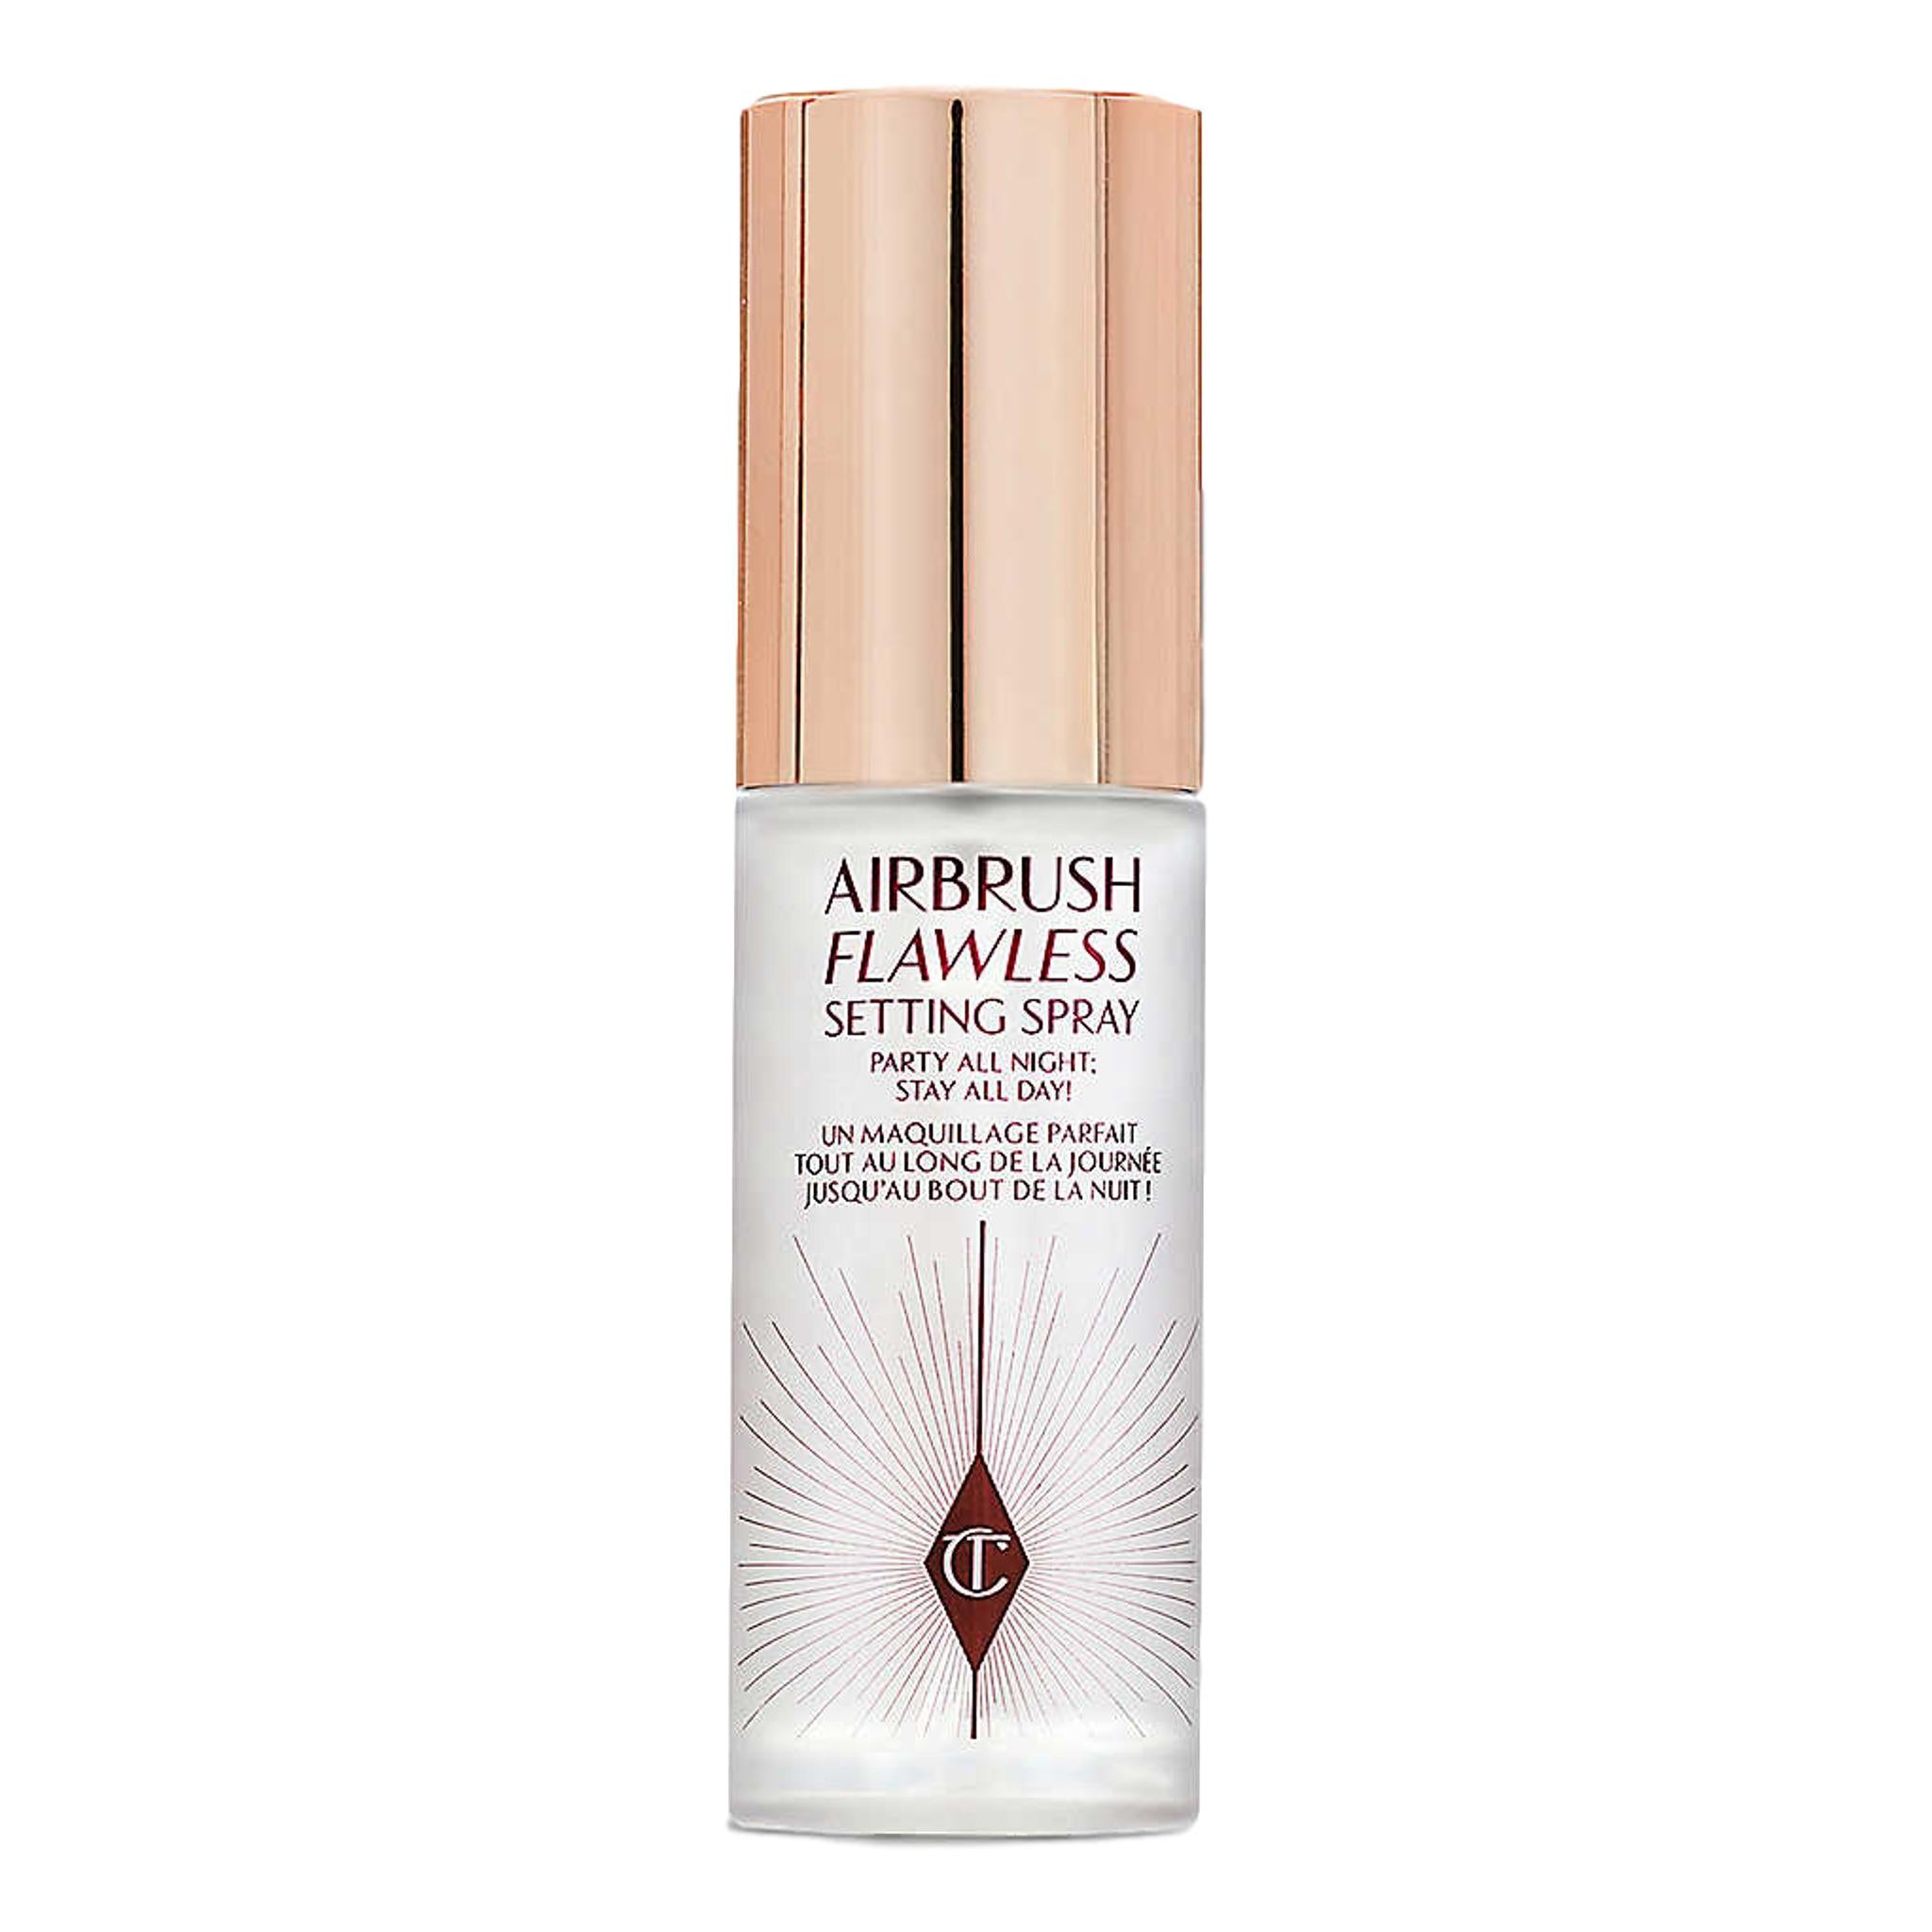 Airbrush Flawless travel setting spray, 34ml, Setting Spray, London Loves Beauty